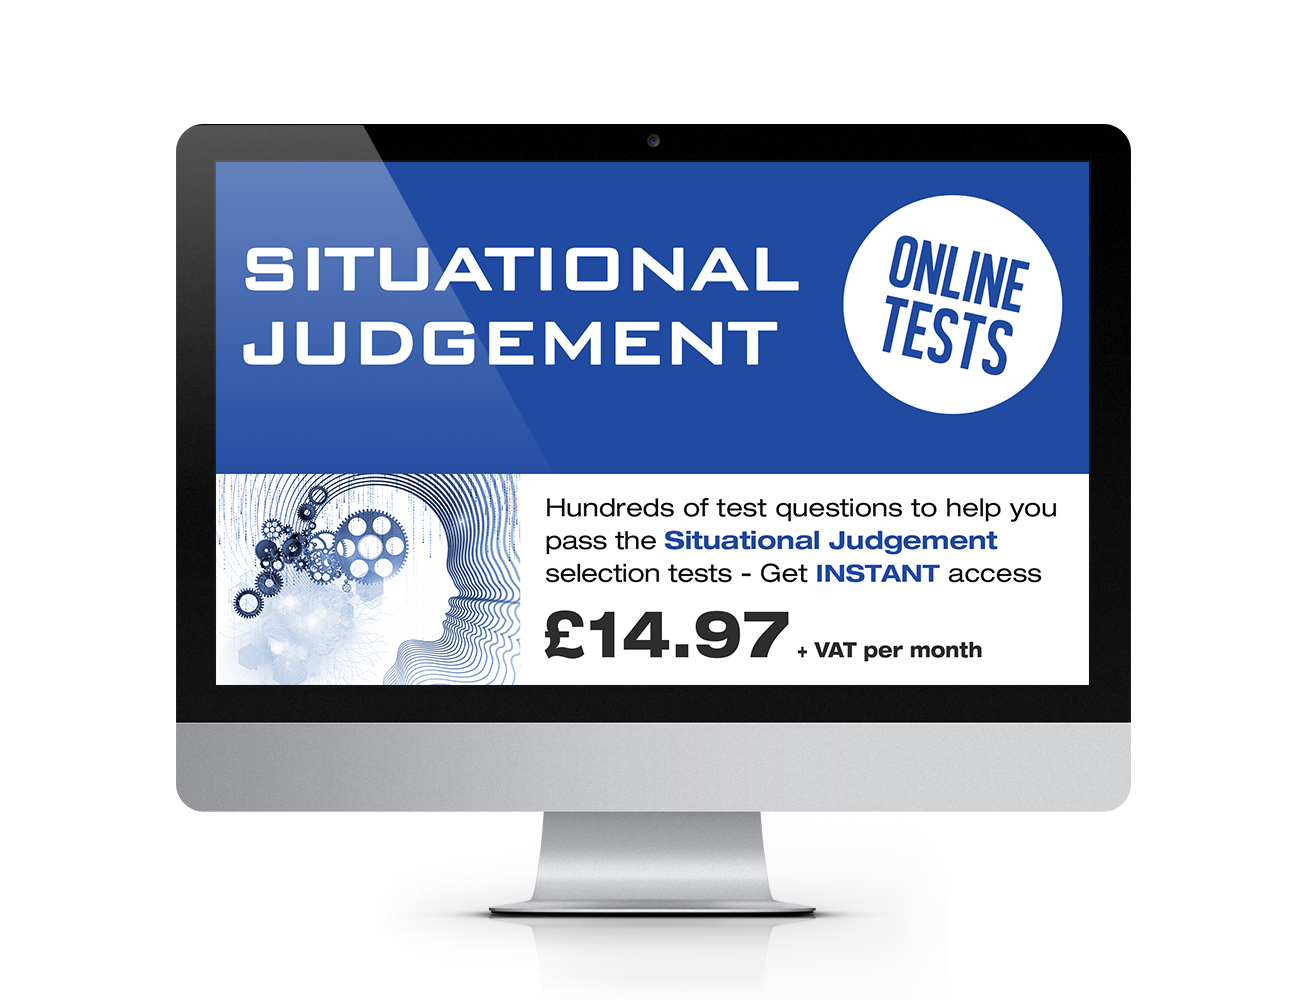 situational judgement test questions get instant access now online situational judgement tests